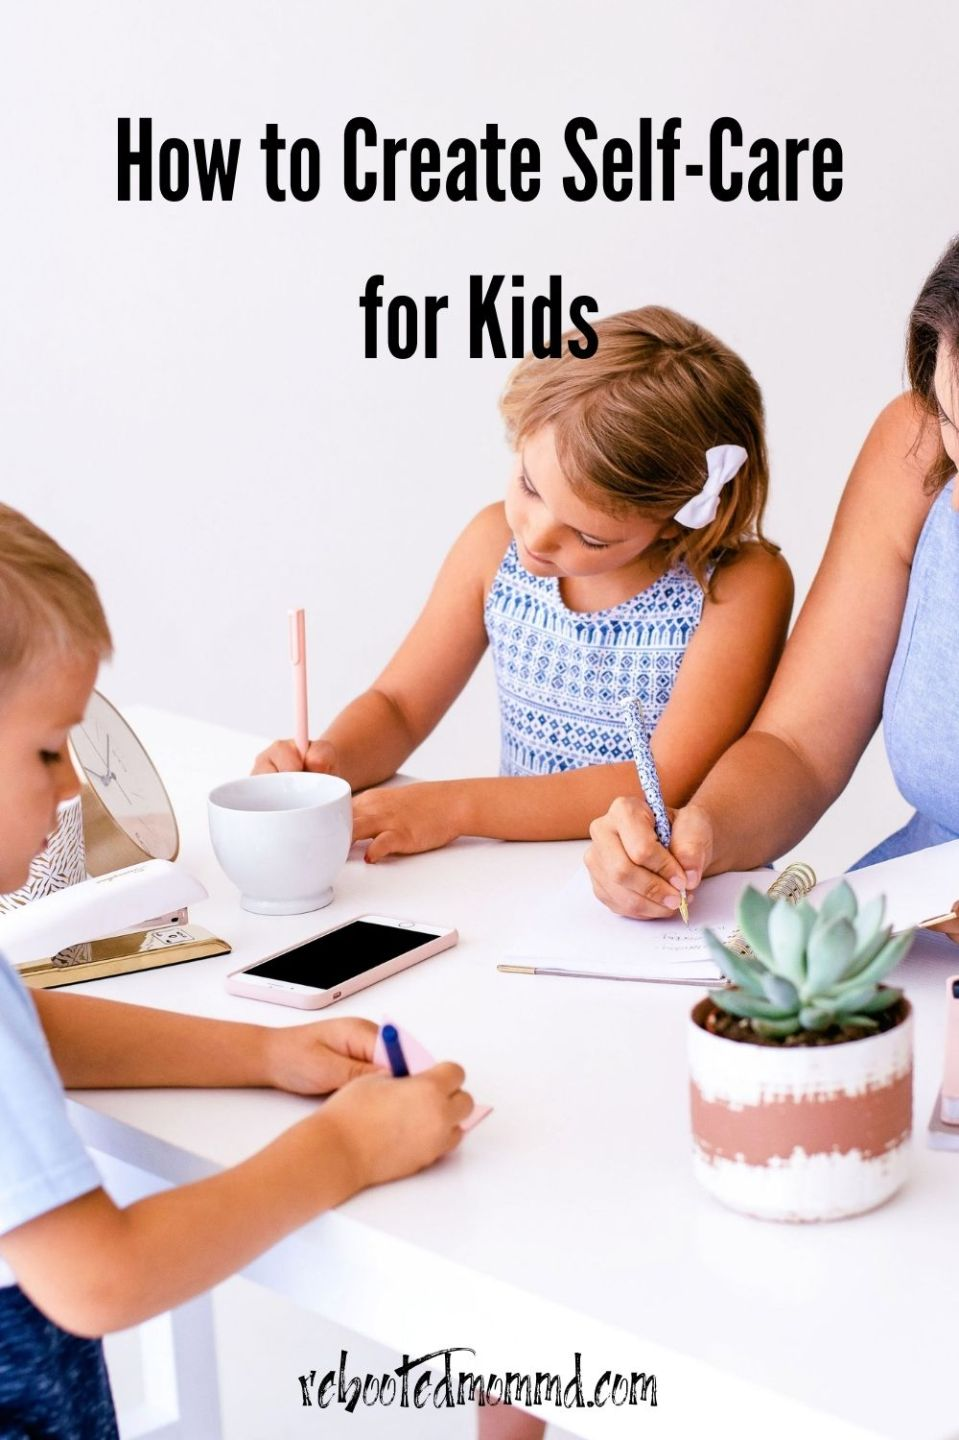 How to Create Self-Care for Kids